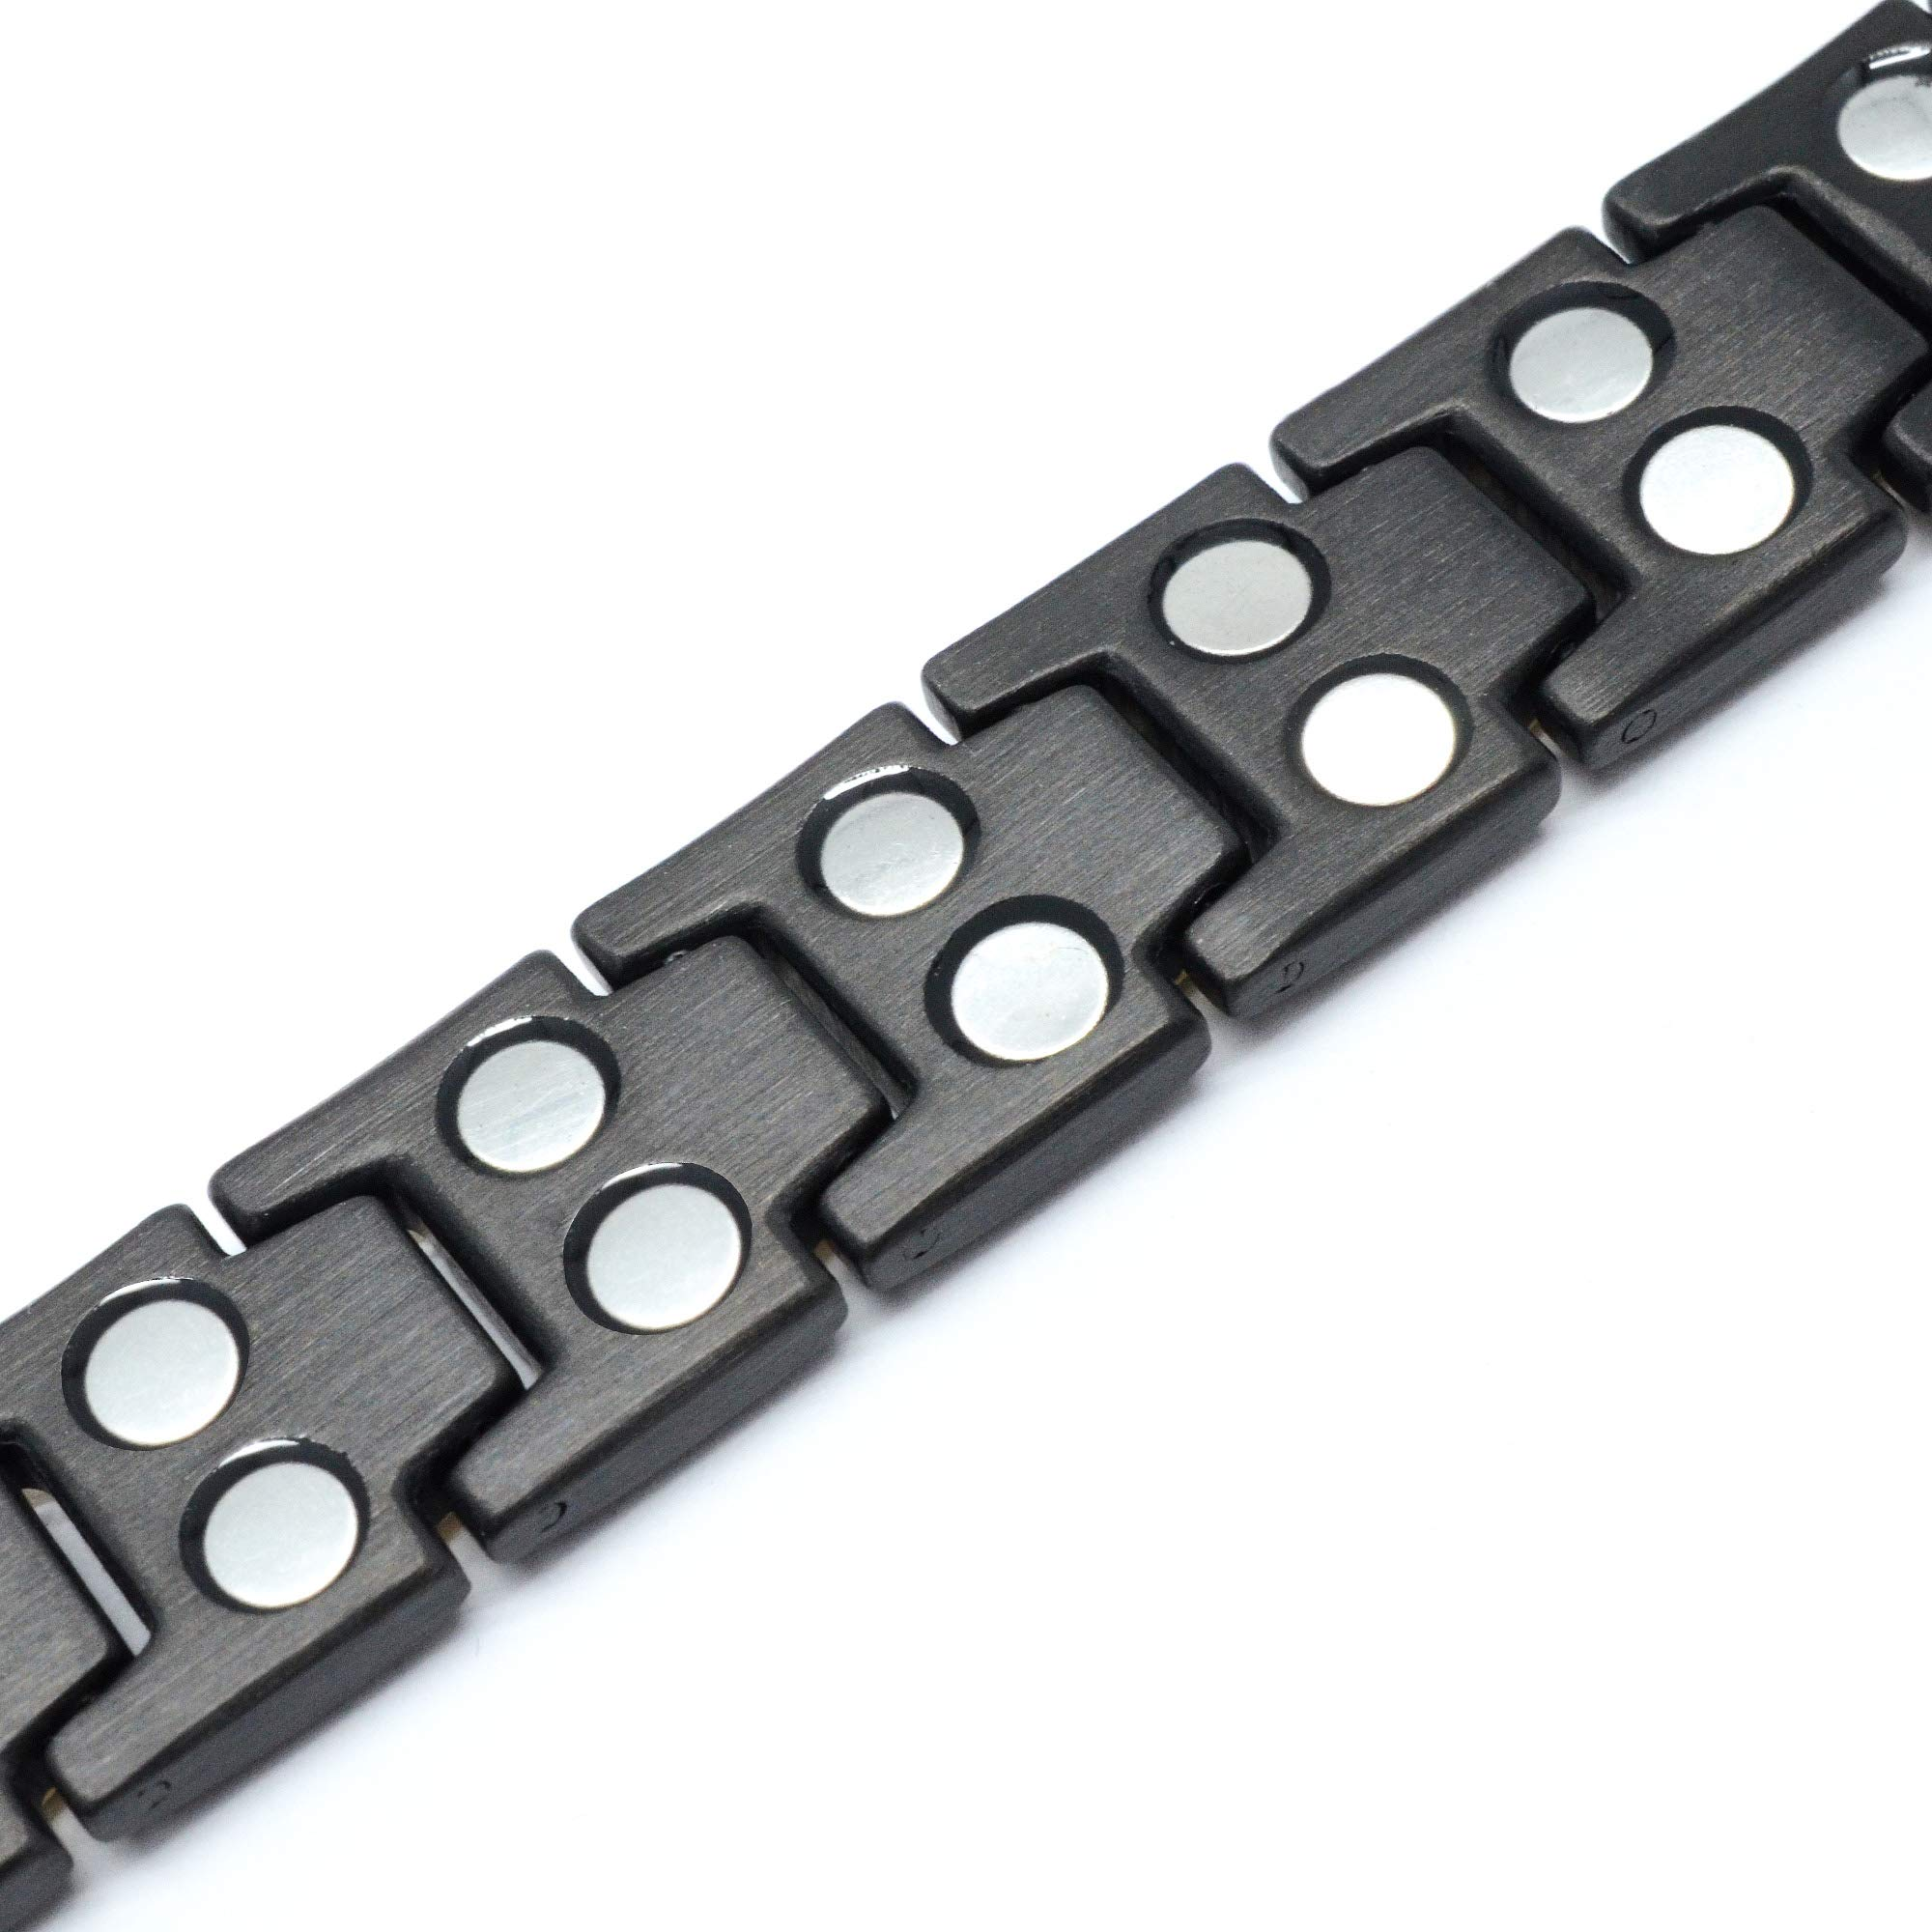 MagnetRX Ultra Strength Magnetic Therapy Bracelet Double Magnet Pain Relief for Arthritis and Carpal Tunnel by MagnetRX (Image #6)